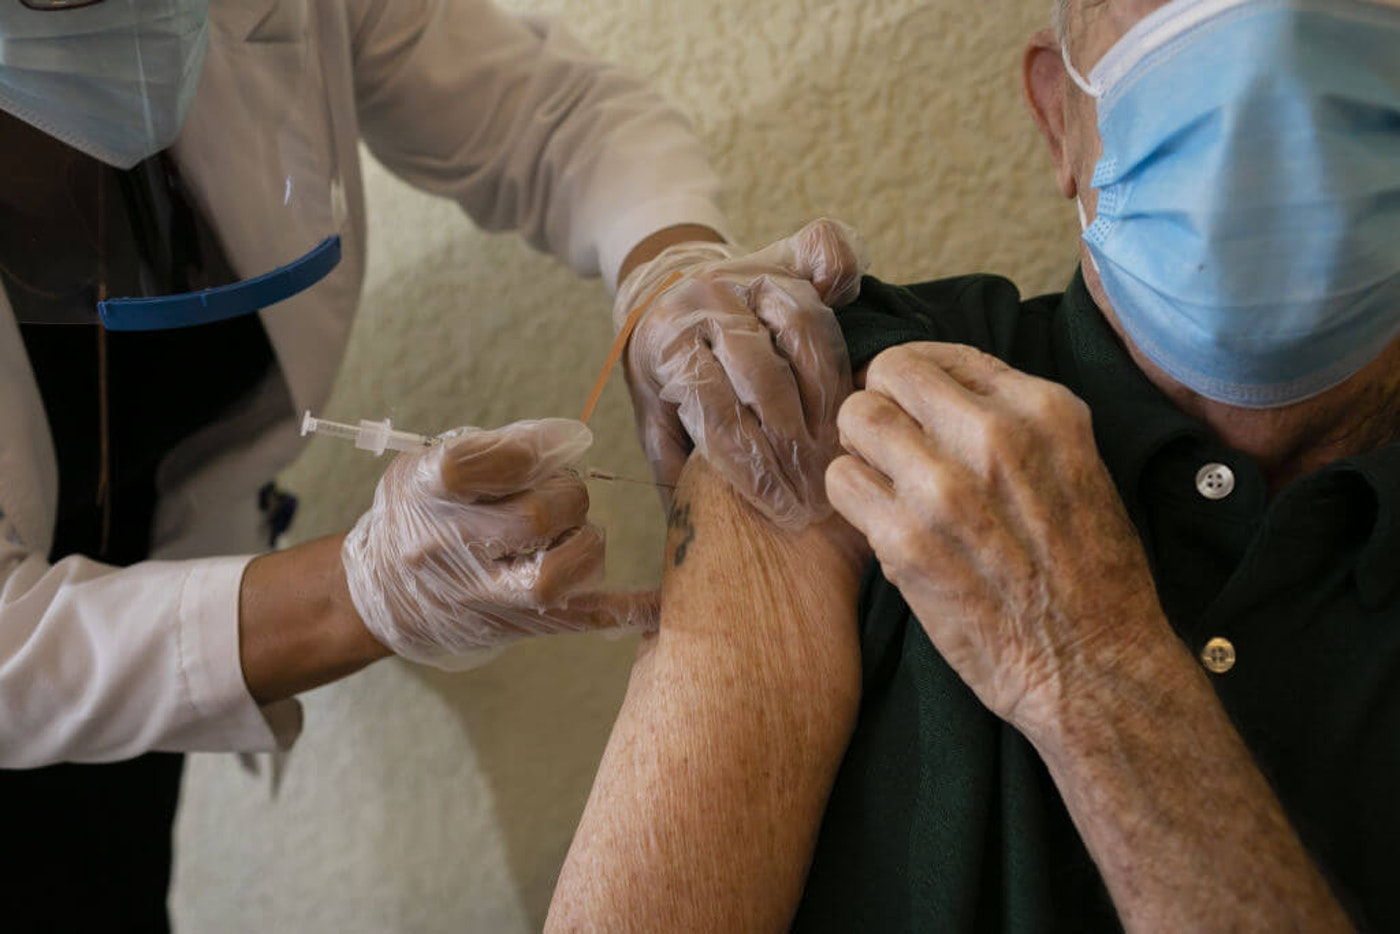 The addition of the Johnson & Johnson vaccine to the United States' arsenal of COVID vaccines—which so far includes one each from Pfizer and Moderna—could make vaccinating large numbers of people easier, once the supply is ready. (Anadolu Agency Photo via Getty Images/Eva Marie Uzcategui Trinkl)